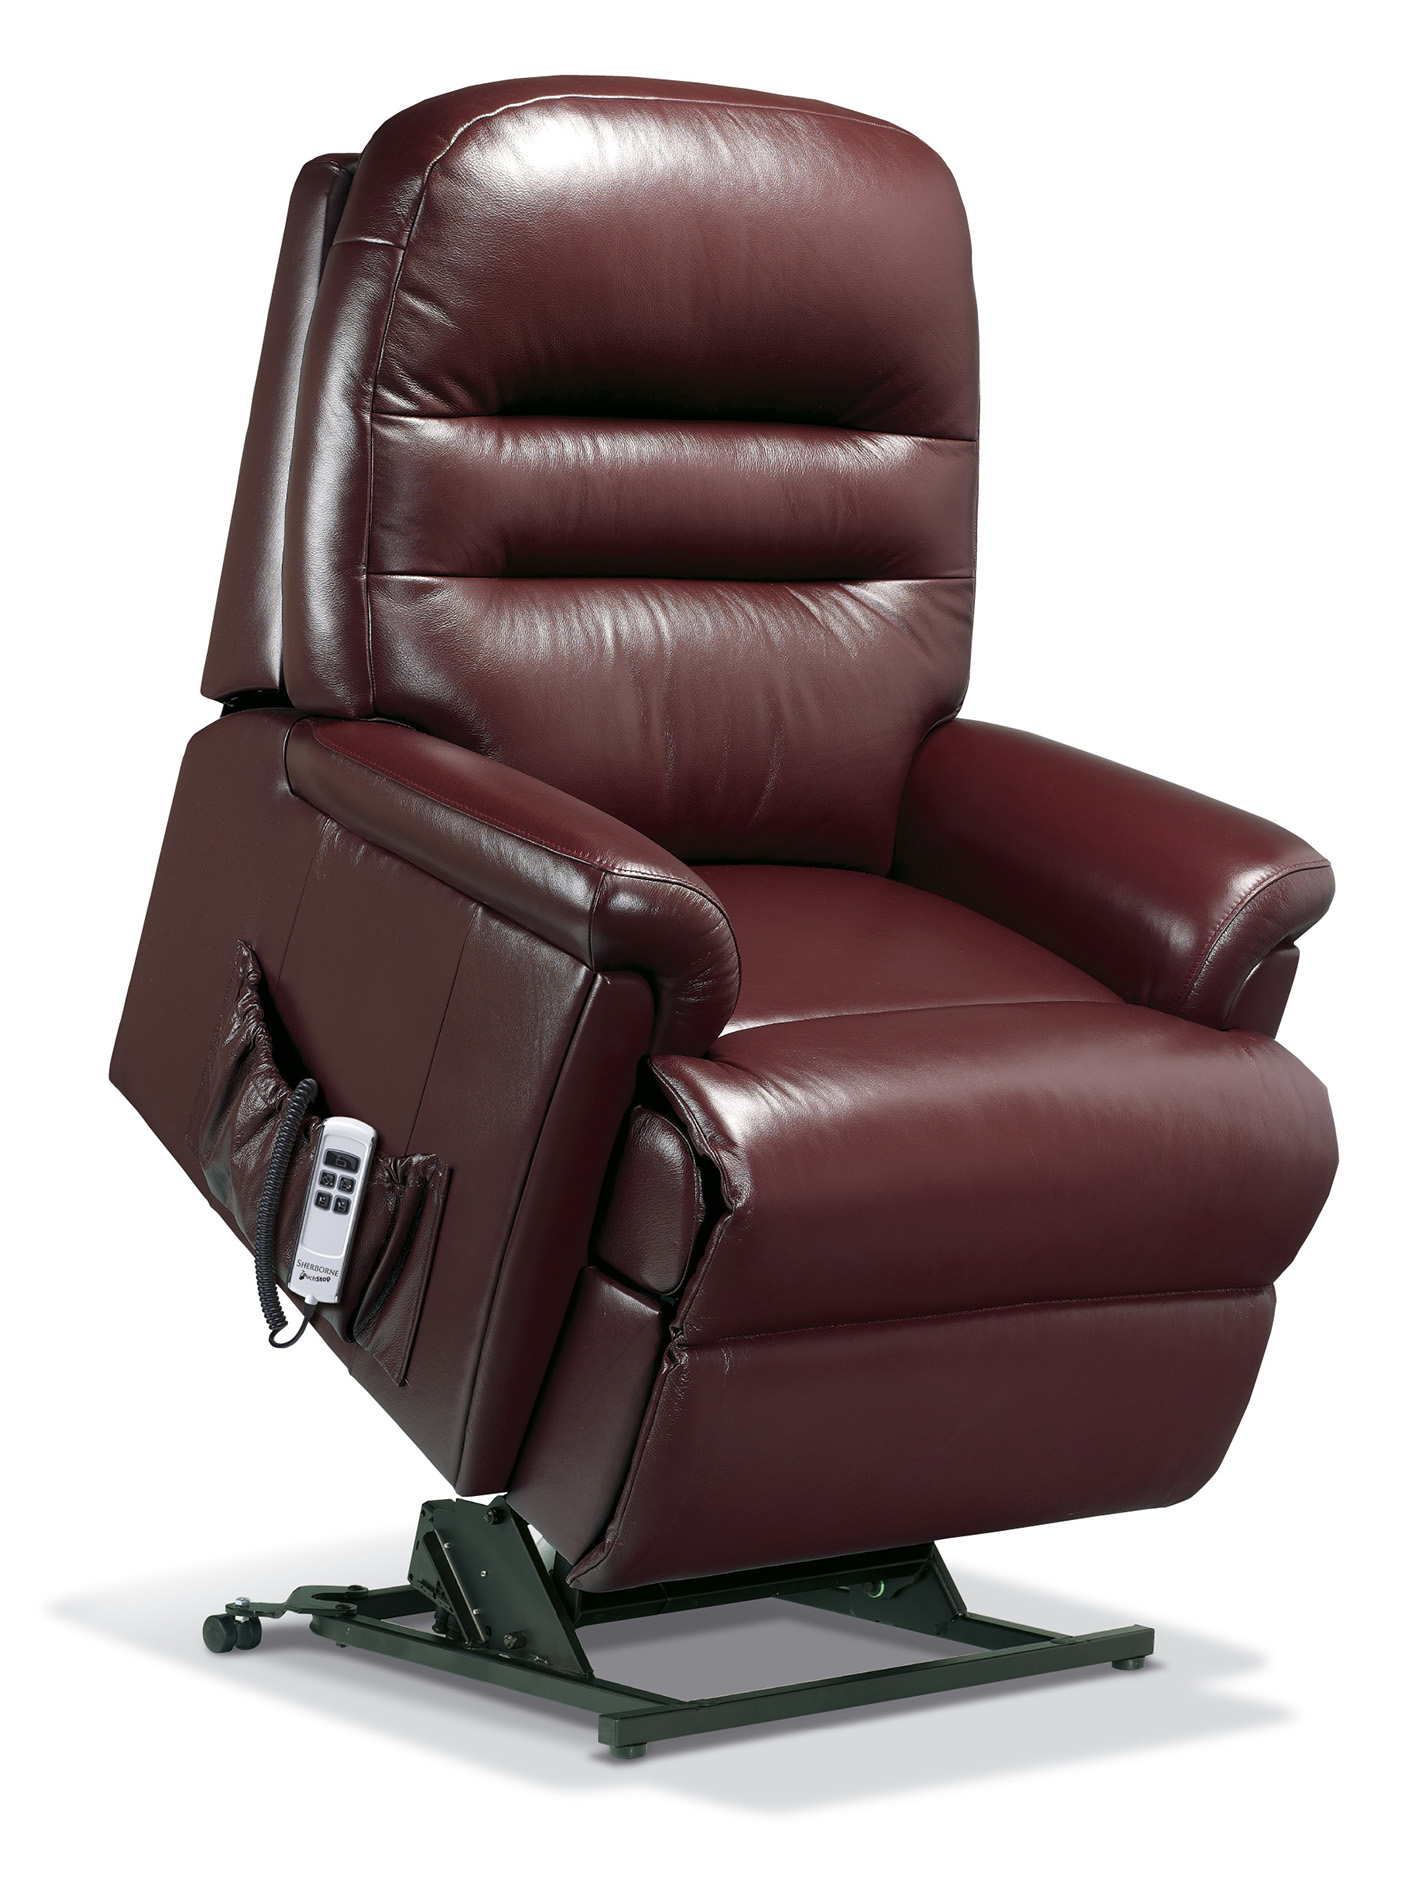 keswick royale leather electric riser recliner sherborne dfs leather sofa electric recliner dfs leather sofa electric recliner